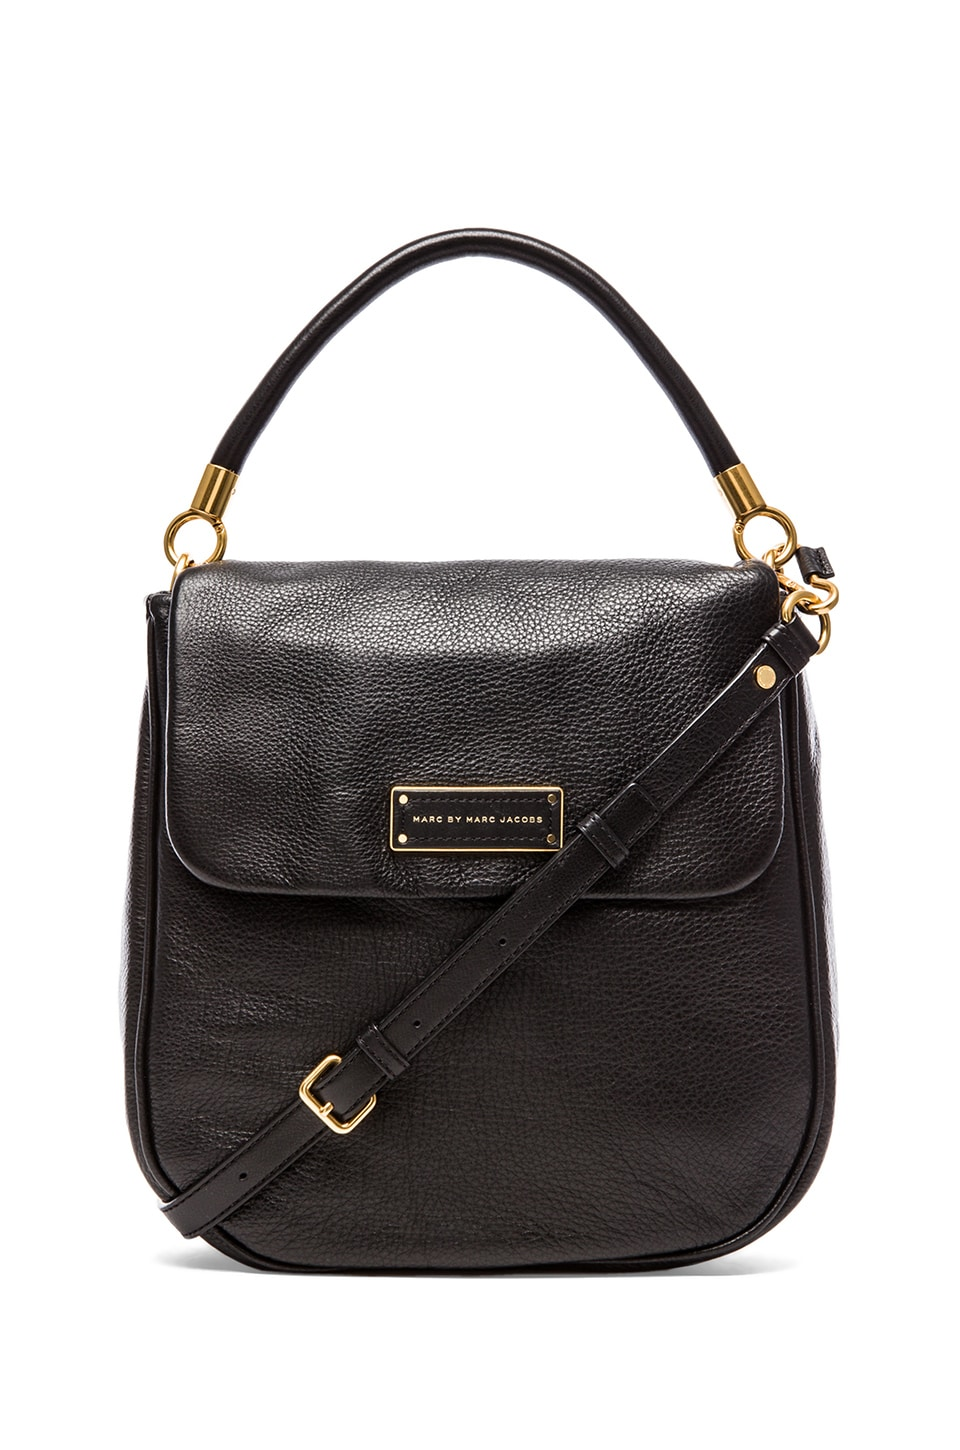 Marc by Marc Jacobs Too Hot to Handle Laetitia Hobo in Black